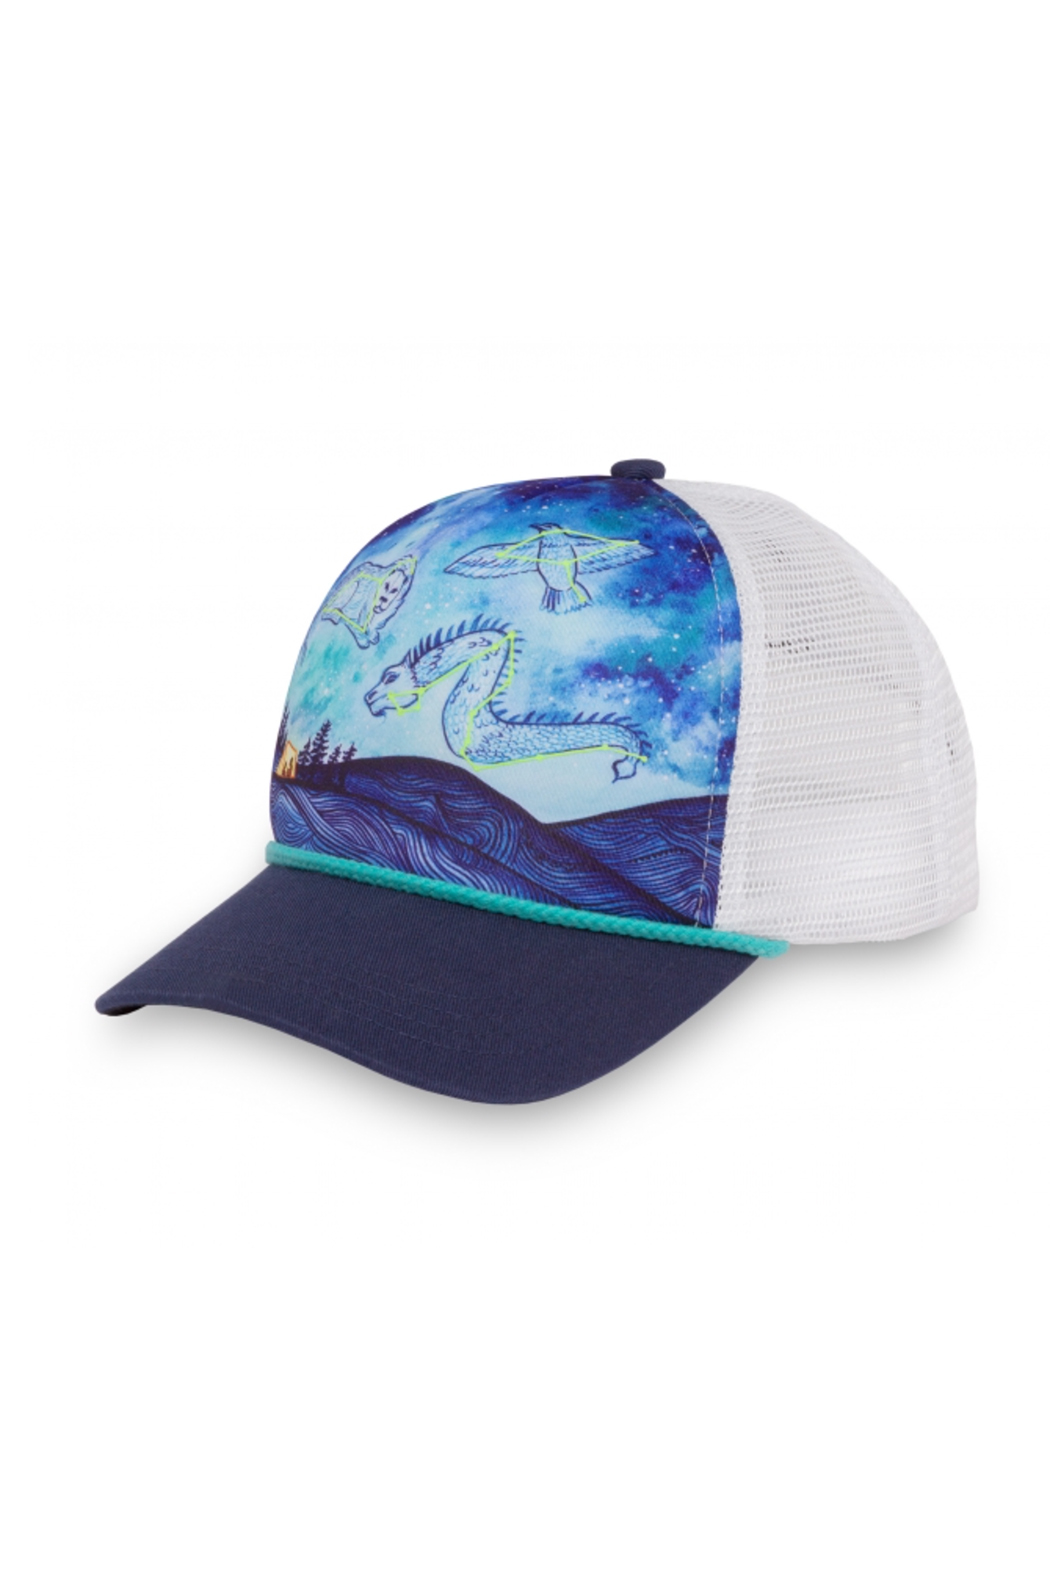 Sunday Afternoons Kids Dreaming Sky Trucker Hat - Side Cropped Image